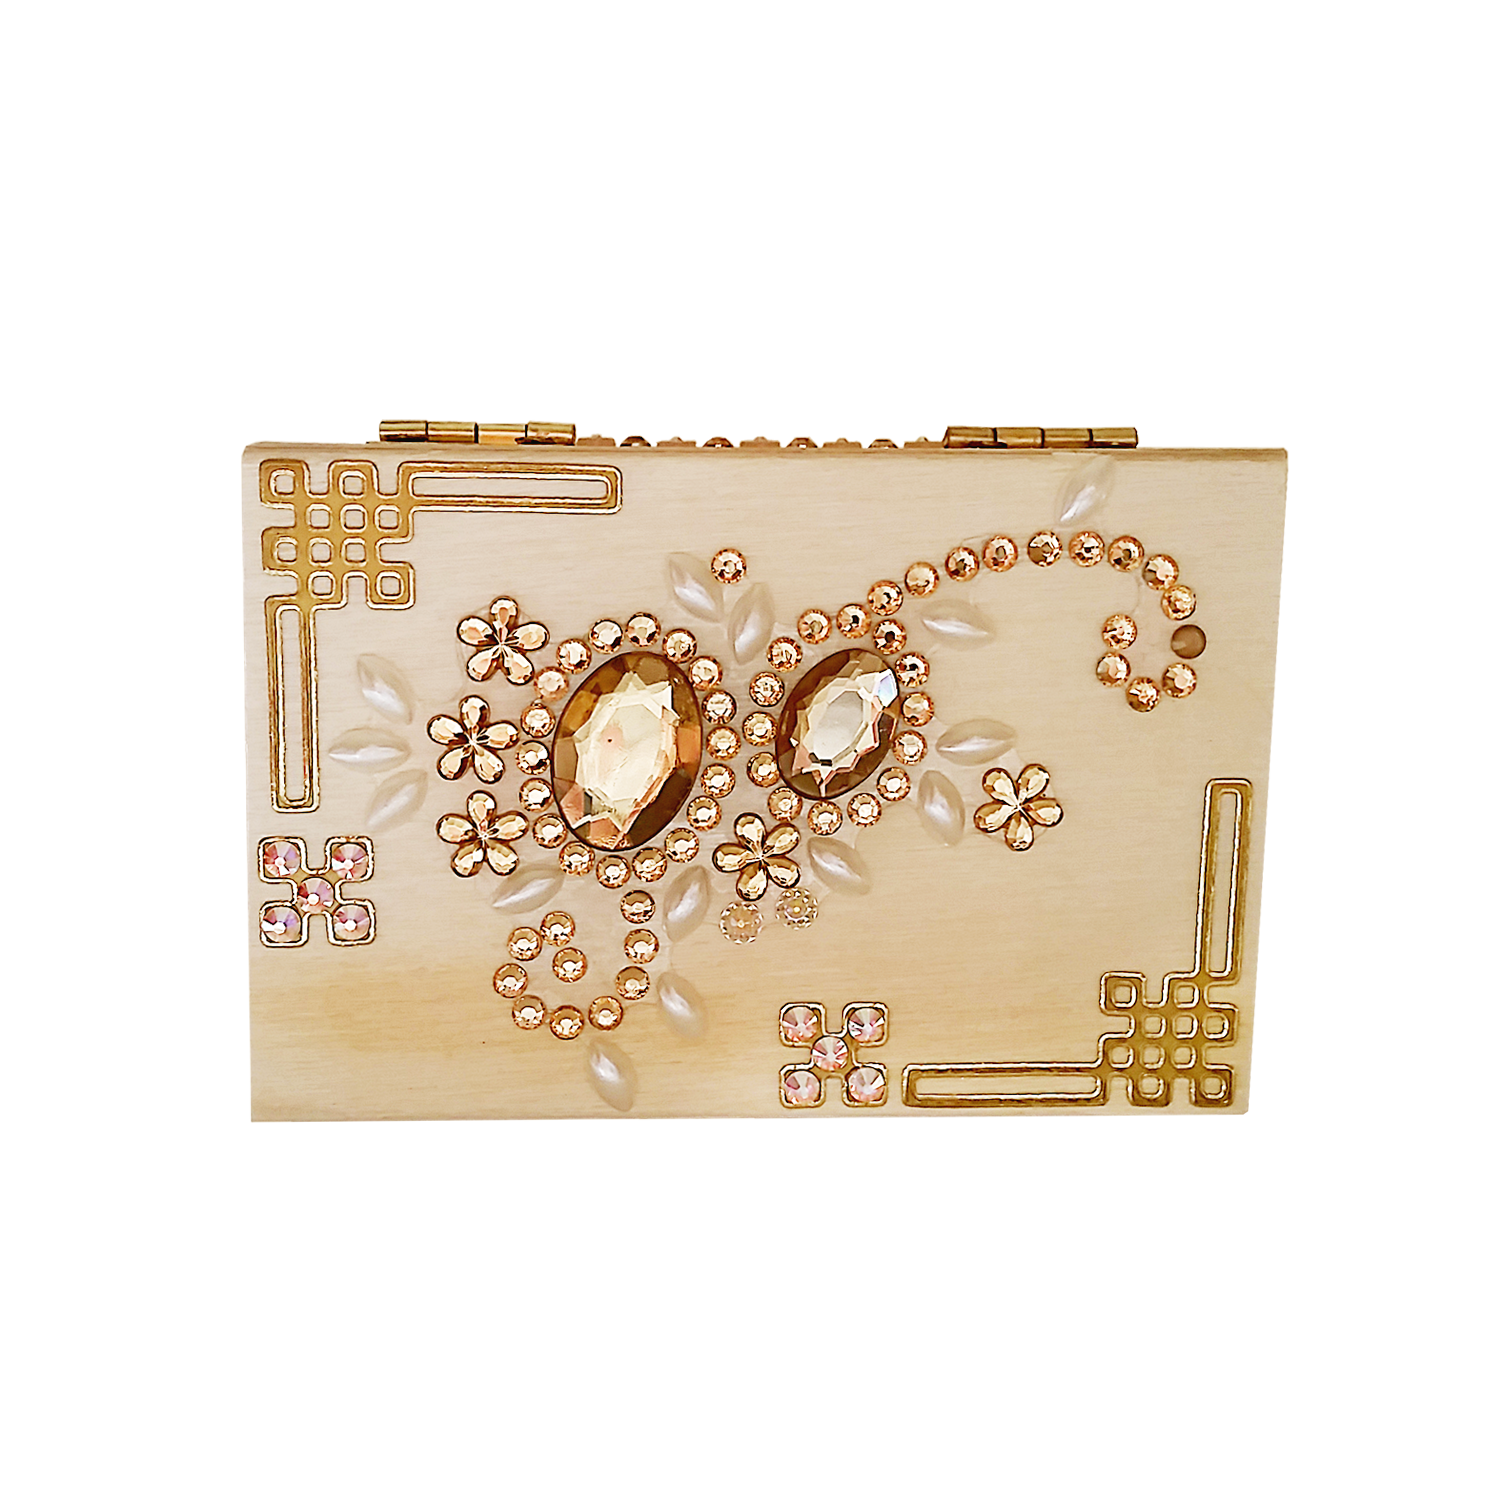 This is amazing ornament of brown rhinestones are making this box more exclusive and bright! Shop now on jvboutique.com